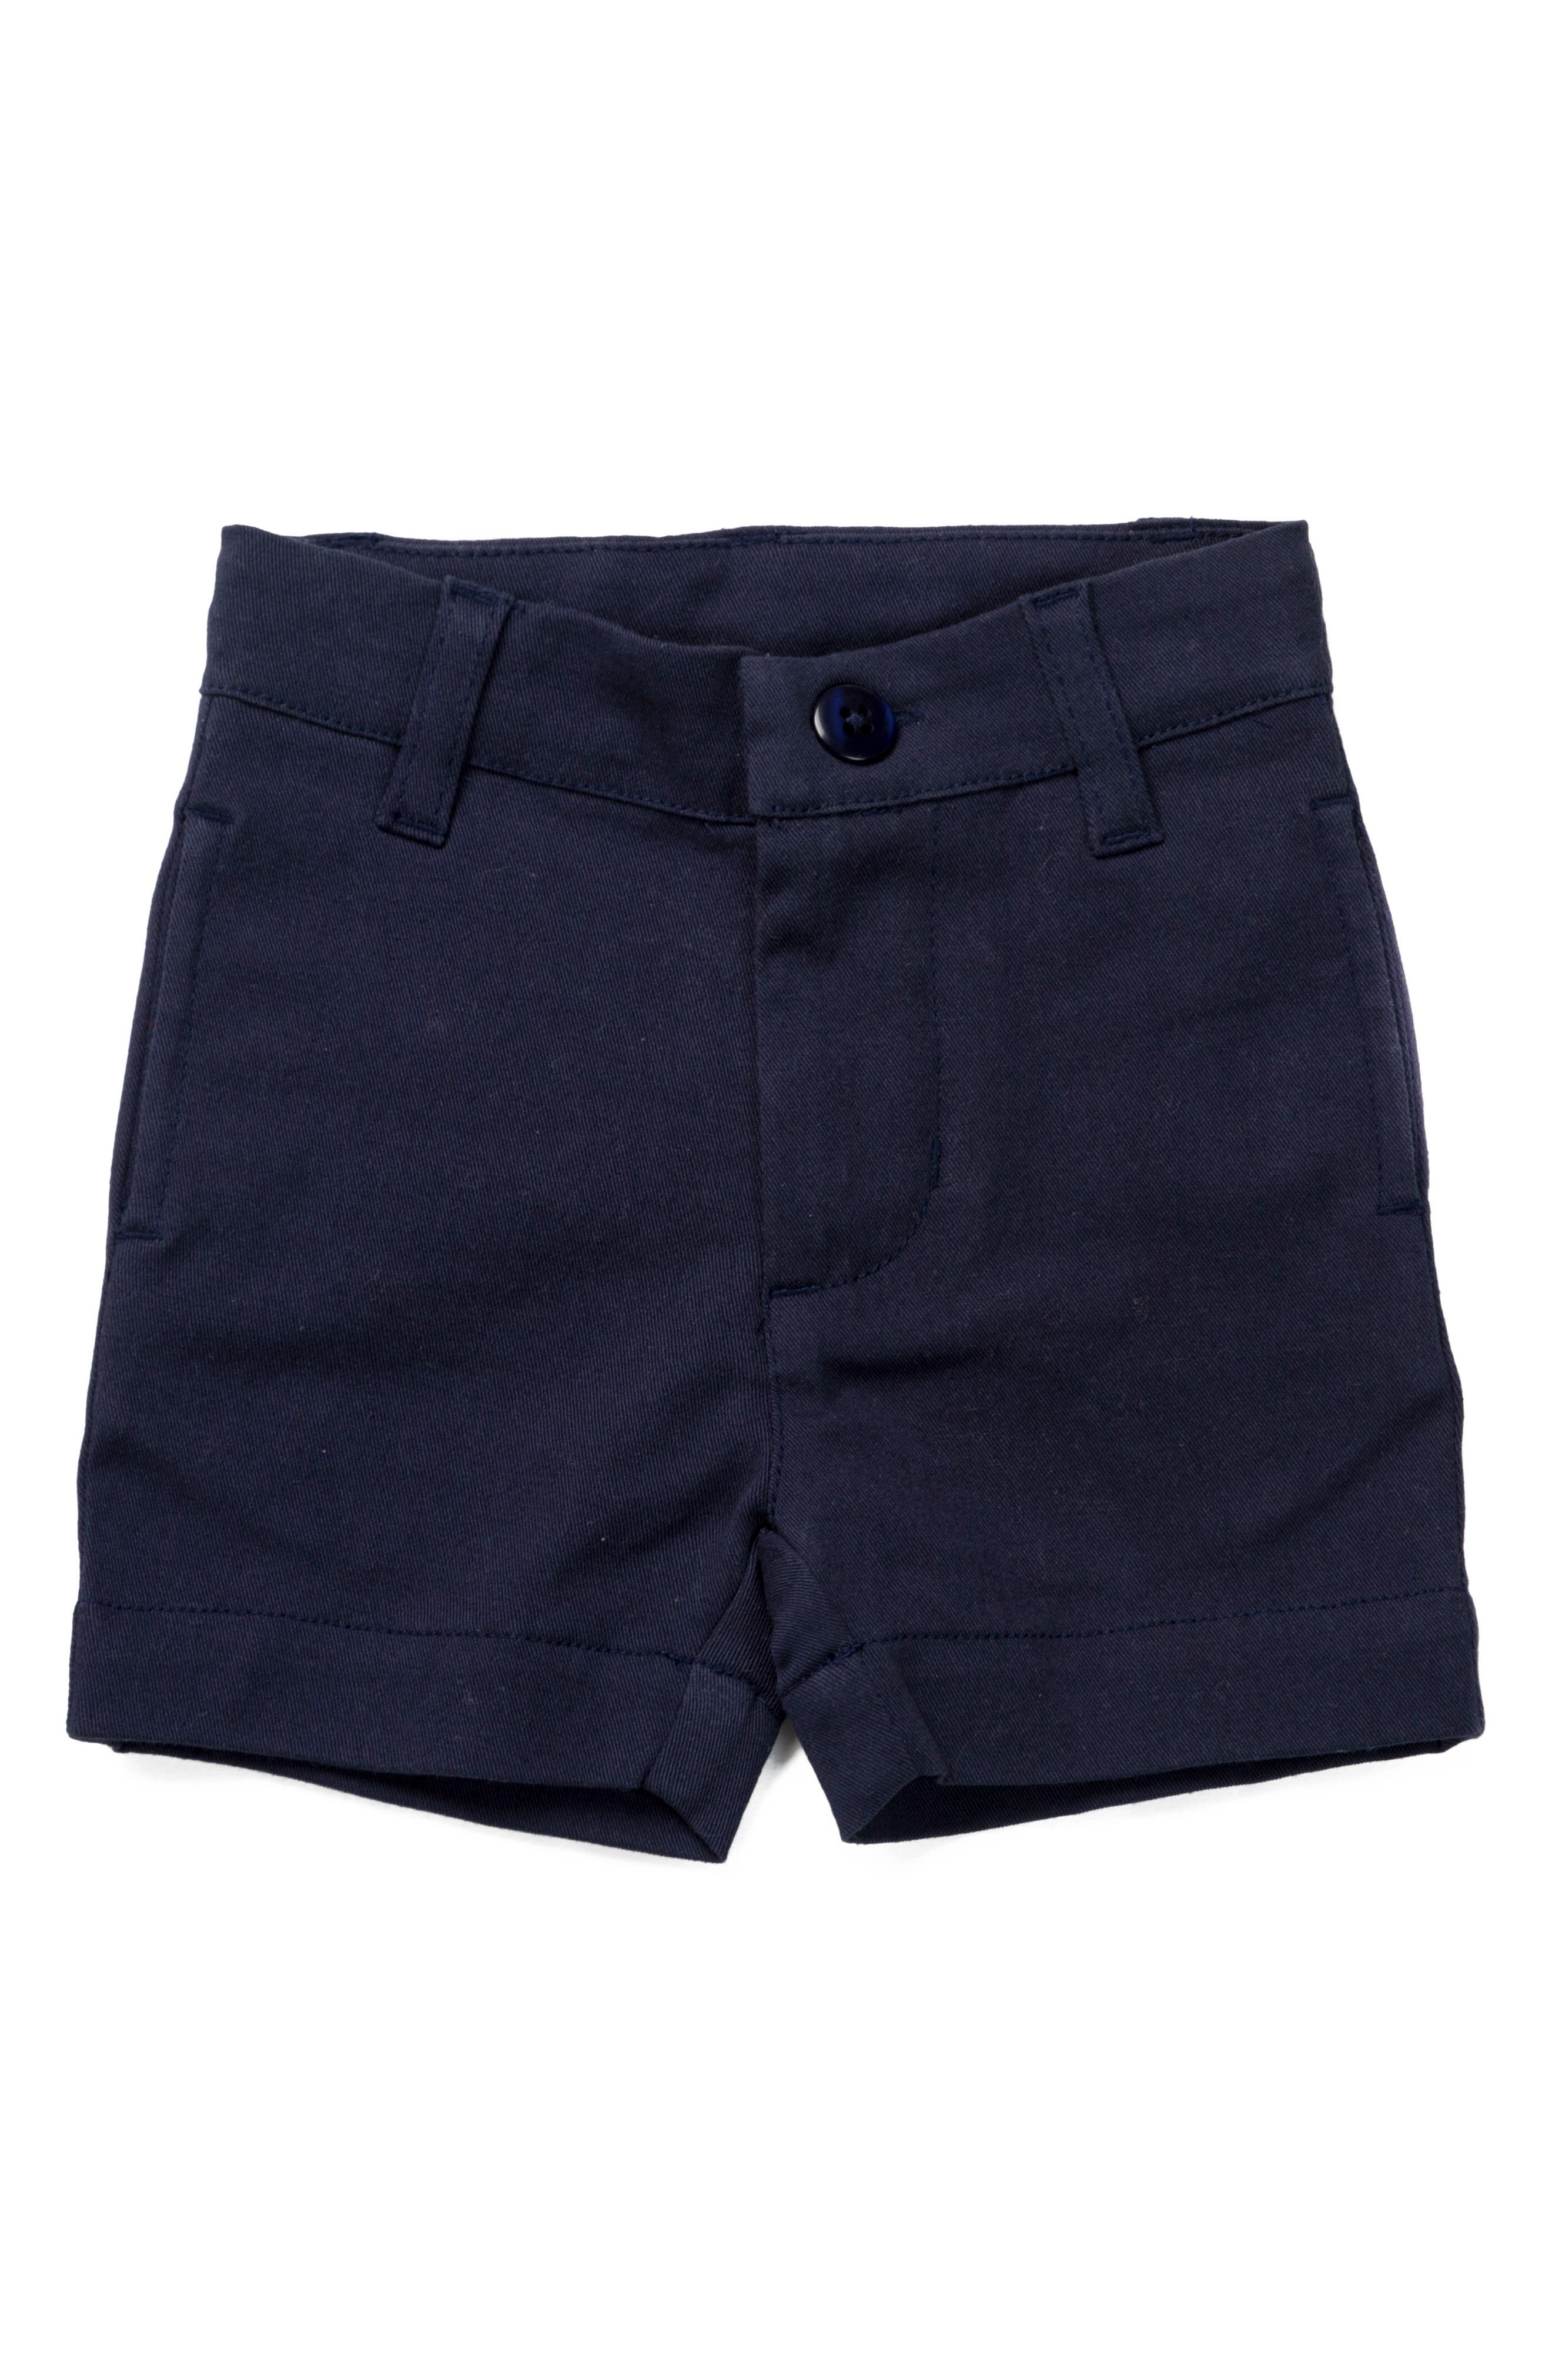 Alternate Image 1 Selected - Monica + Andy Old Sport Shorts (Toddler Boys)